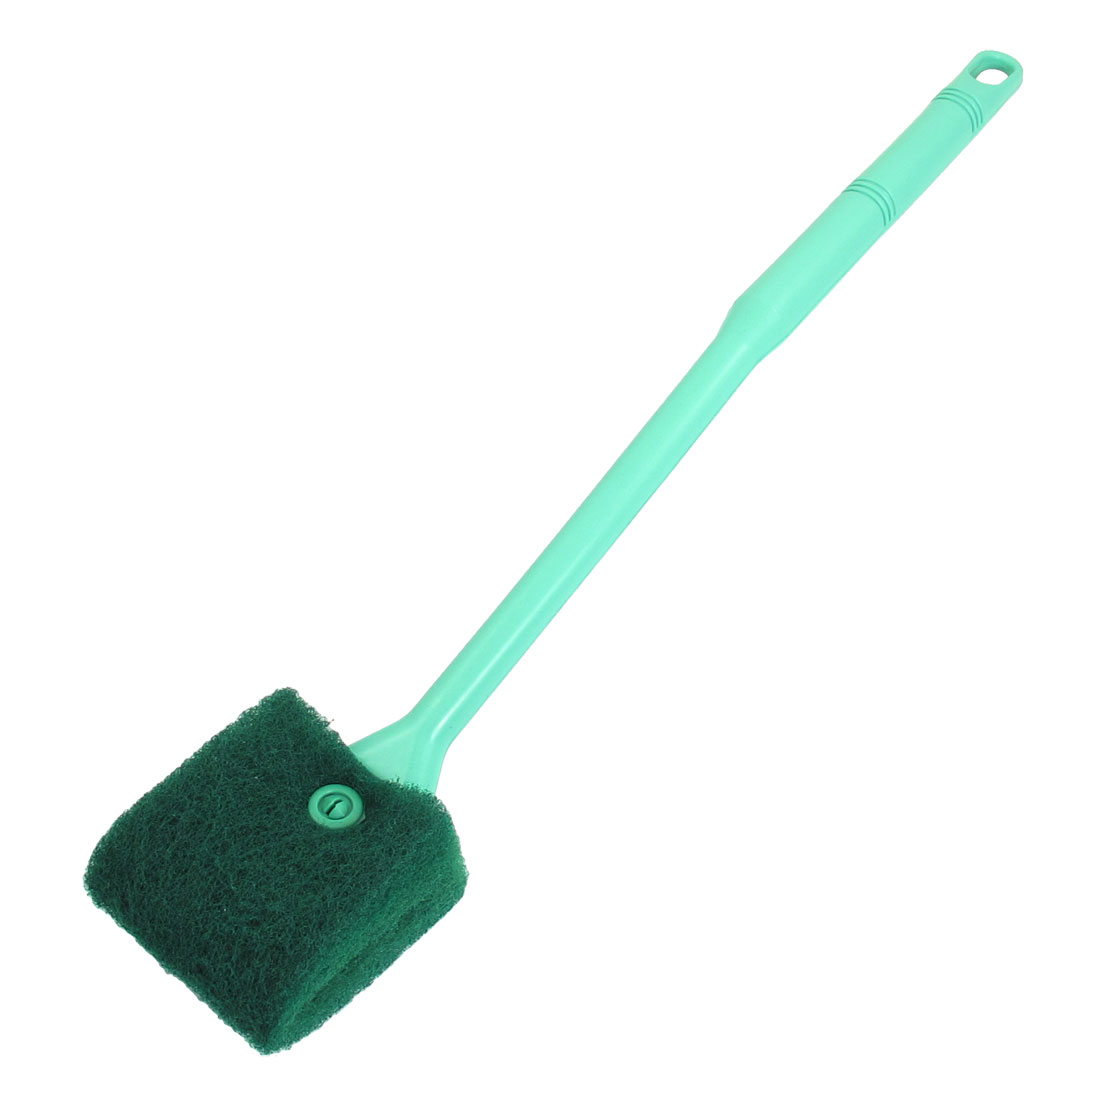 "Green Plastic Handle Sponge Cleaning Brush Cleaners for Fish Tank 16"" Long"